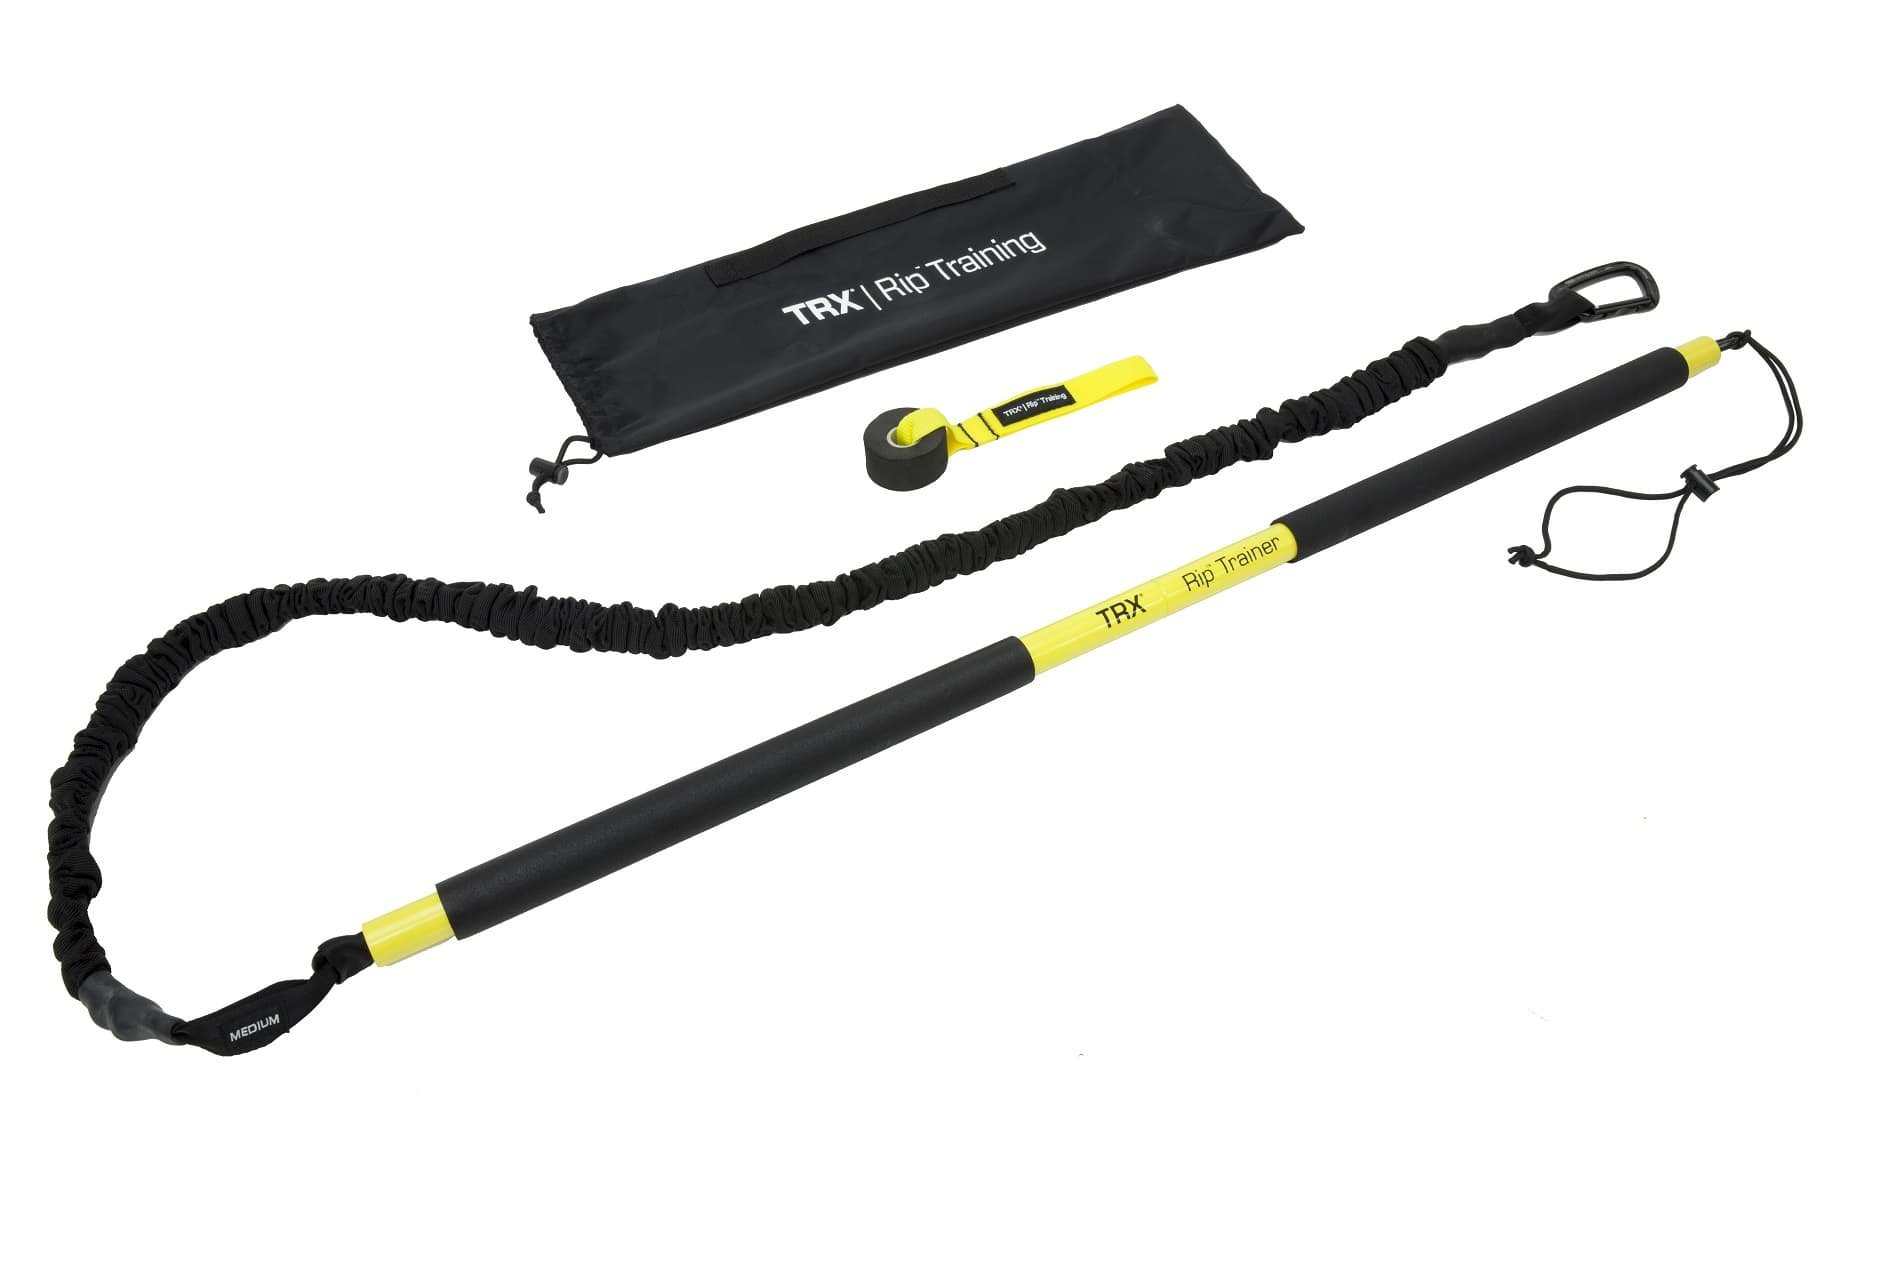 TRX TRXRIPI-PACK  Training - RIP Trainer Basic Kit, Essential for Strengthening the Core and Increasing Cardiovascular endurance